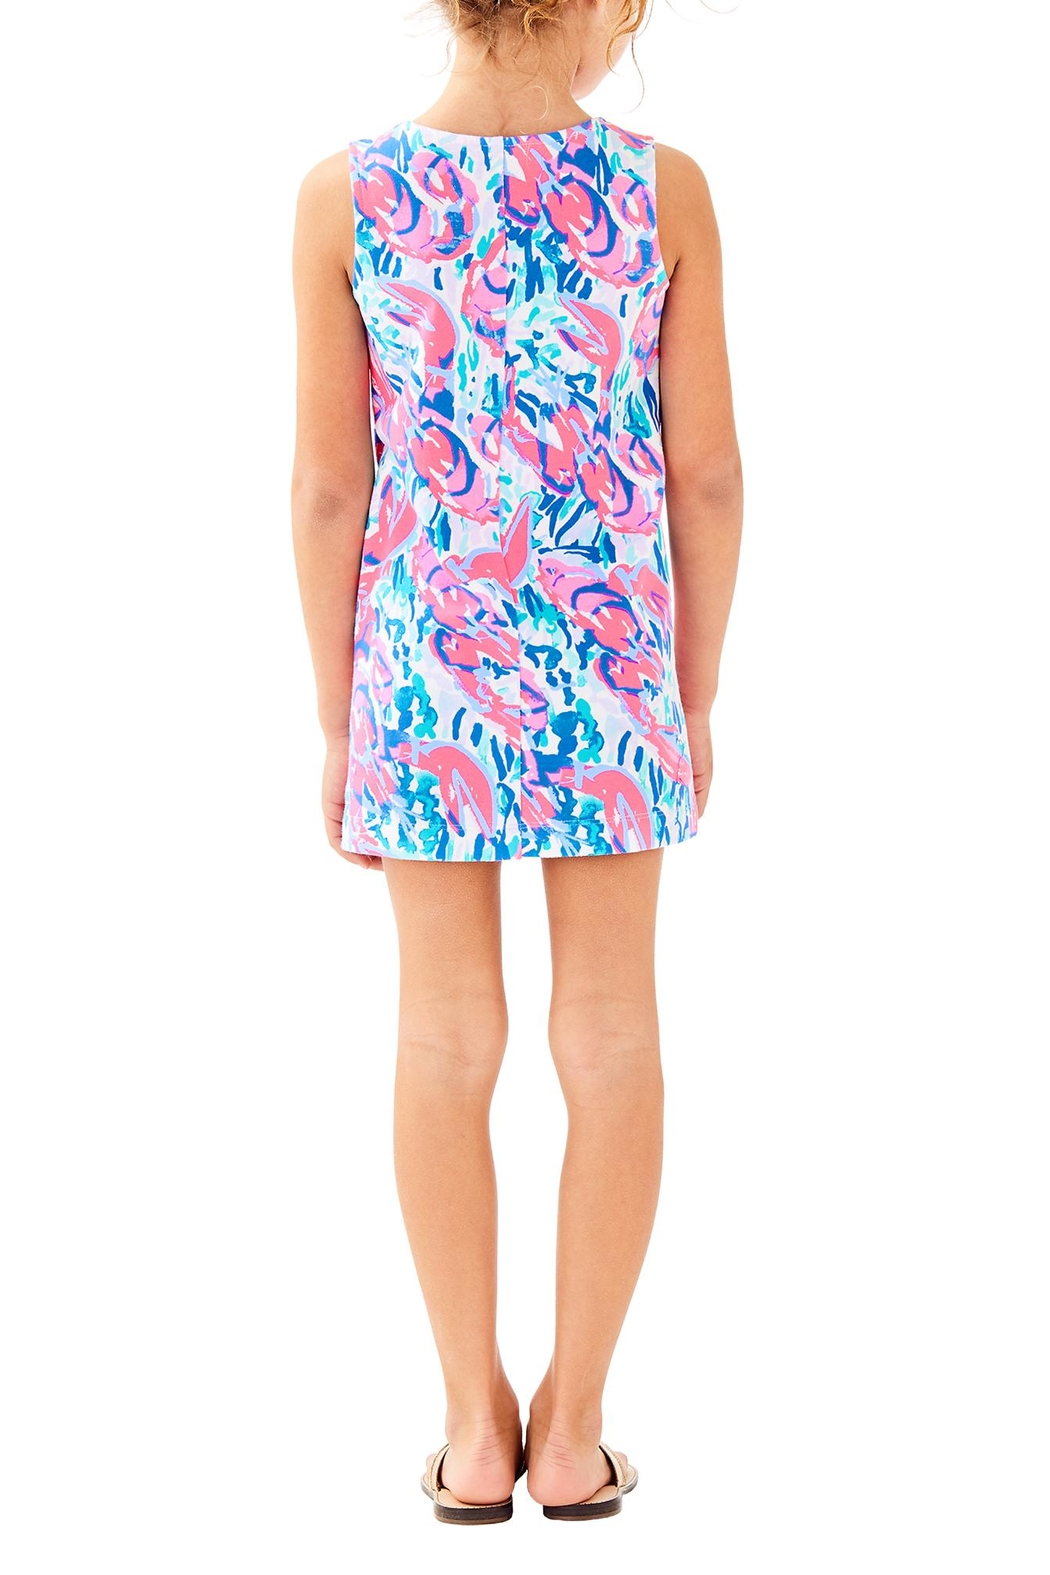 Lilly Pulitzer Mini Harper Shift - Front Full Image